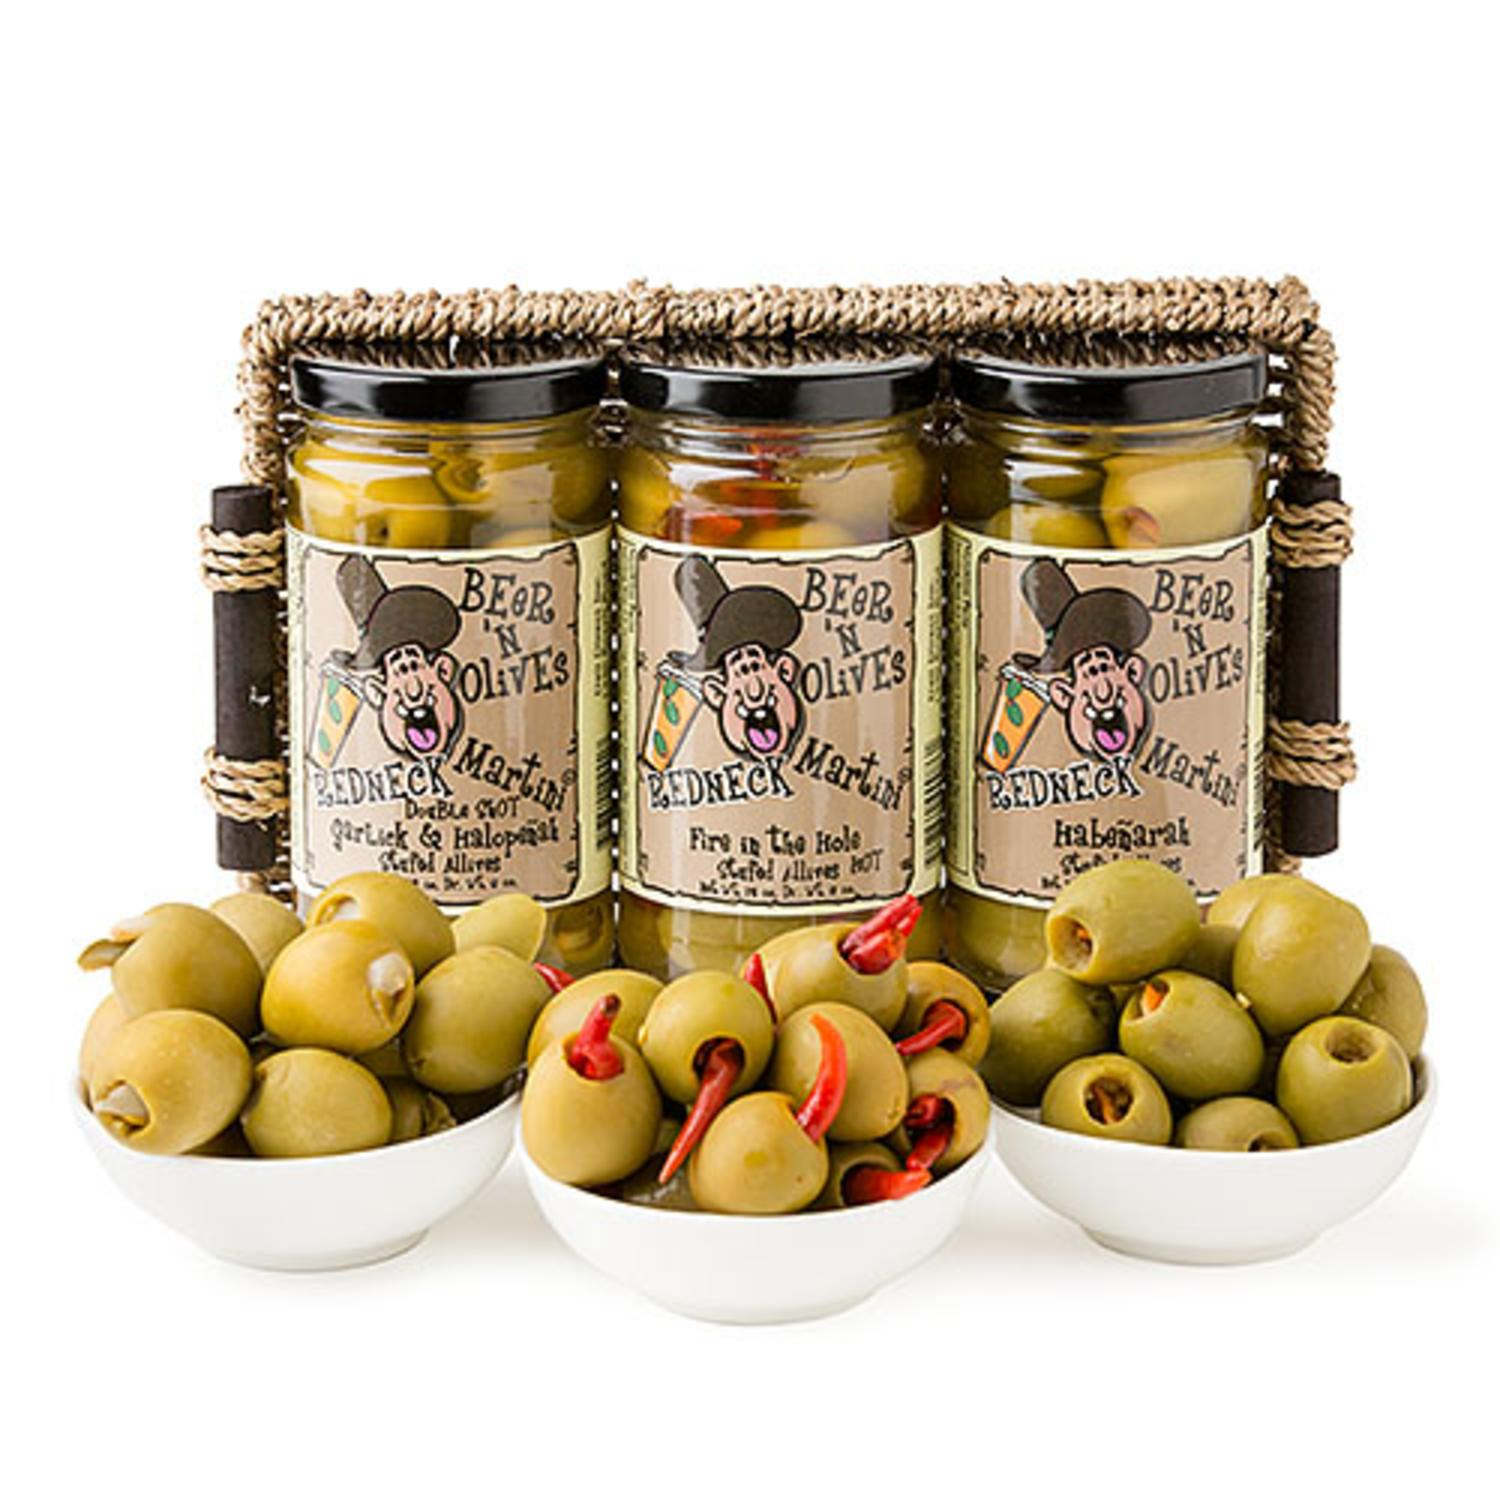 Holiday Party Gourmet Spicy Redneck Beer 'n Olives Martini Cocktail Olive Sampler Gift... by CC Home Furnishings